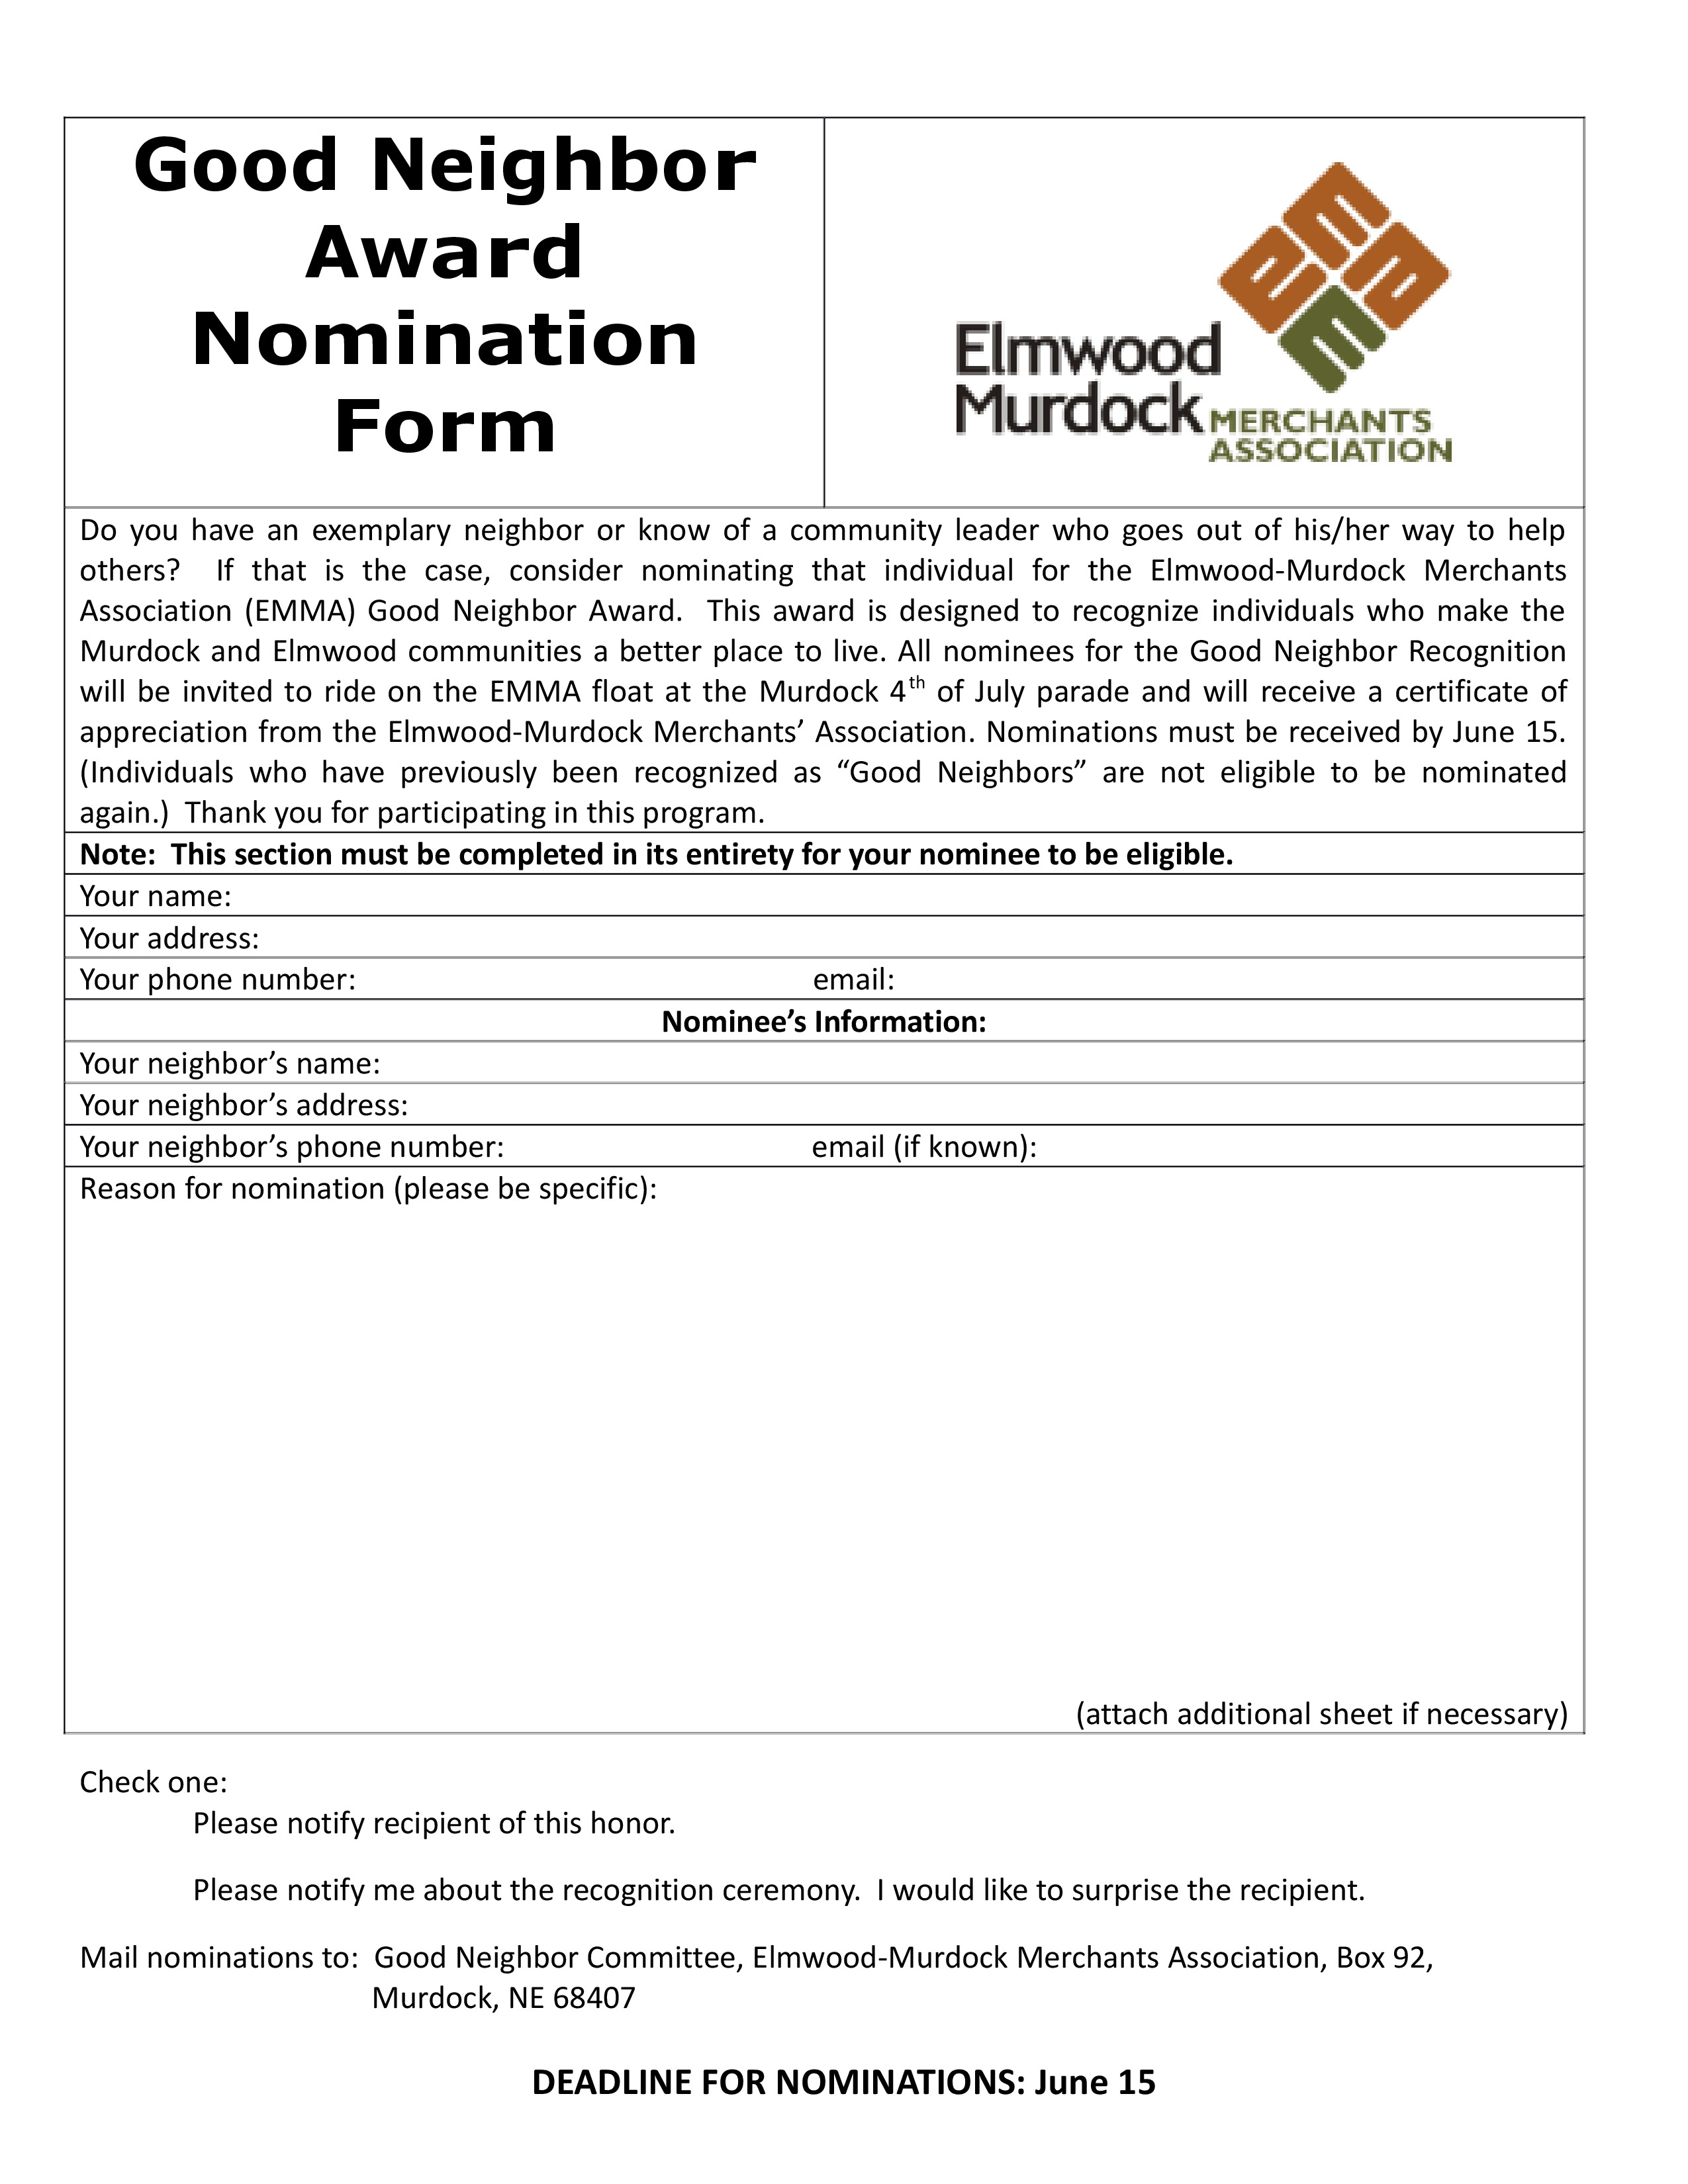 Good Neighbor Award Nomination Form page 0